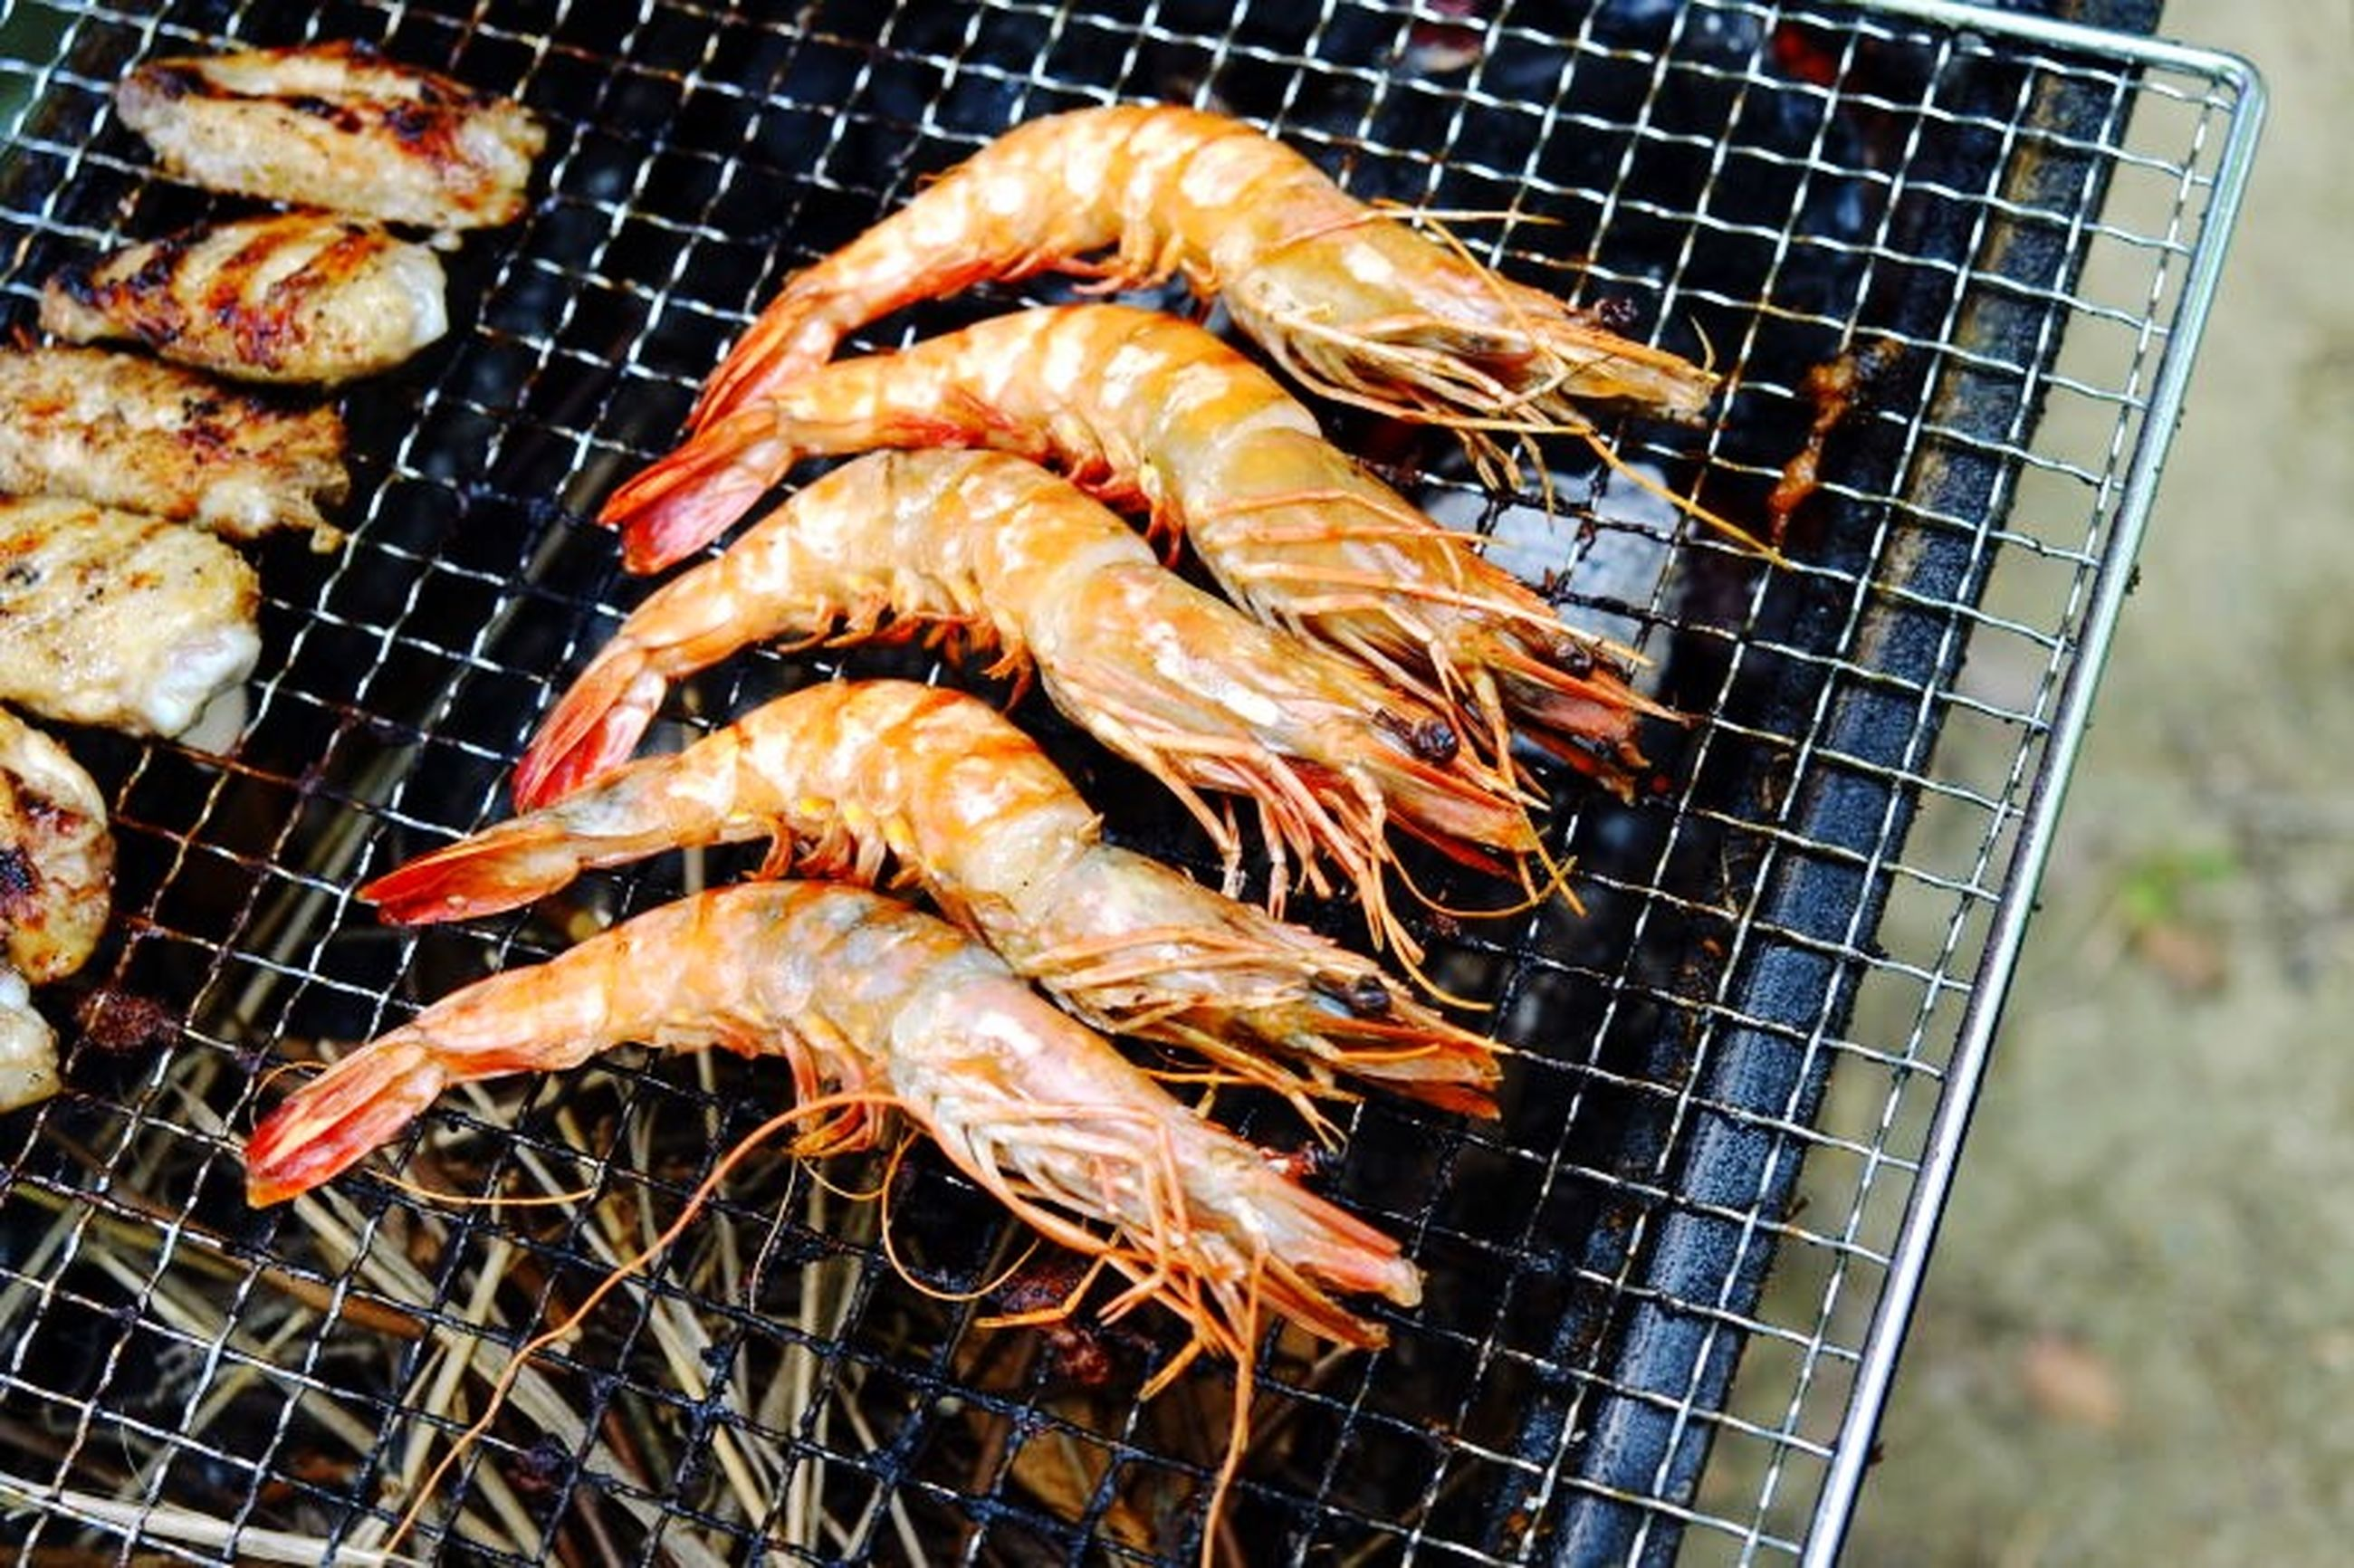 food and drink, food, barbecue grill, heat - temperature, barbecue, grilled, preparation, freshness, meat, cooking, preparing food, fire - natural phenomenon, flame, roasted, burning, indoors, healthy eating, close-up, grill, smoke - physical structure